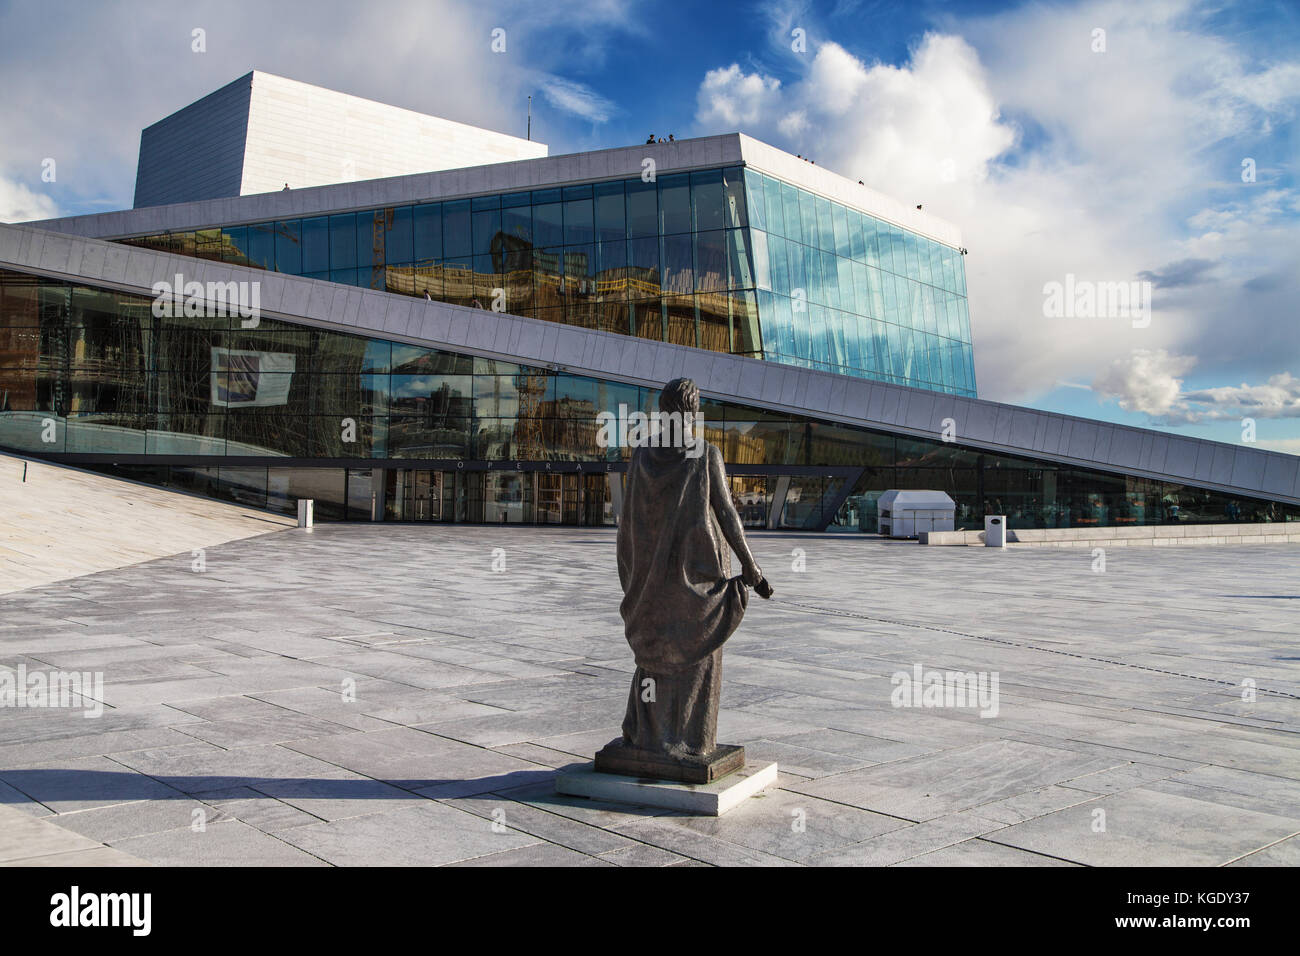 Building of the Norwegian National Opera and Ballet in Oslo, Norway, with the monument to the opera singer Kirsten - Stock Image